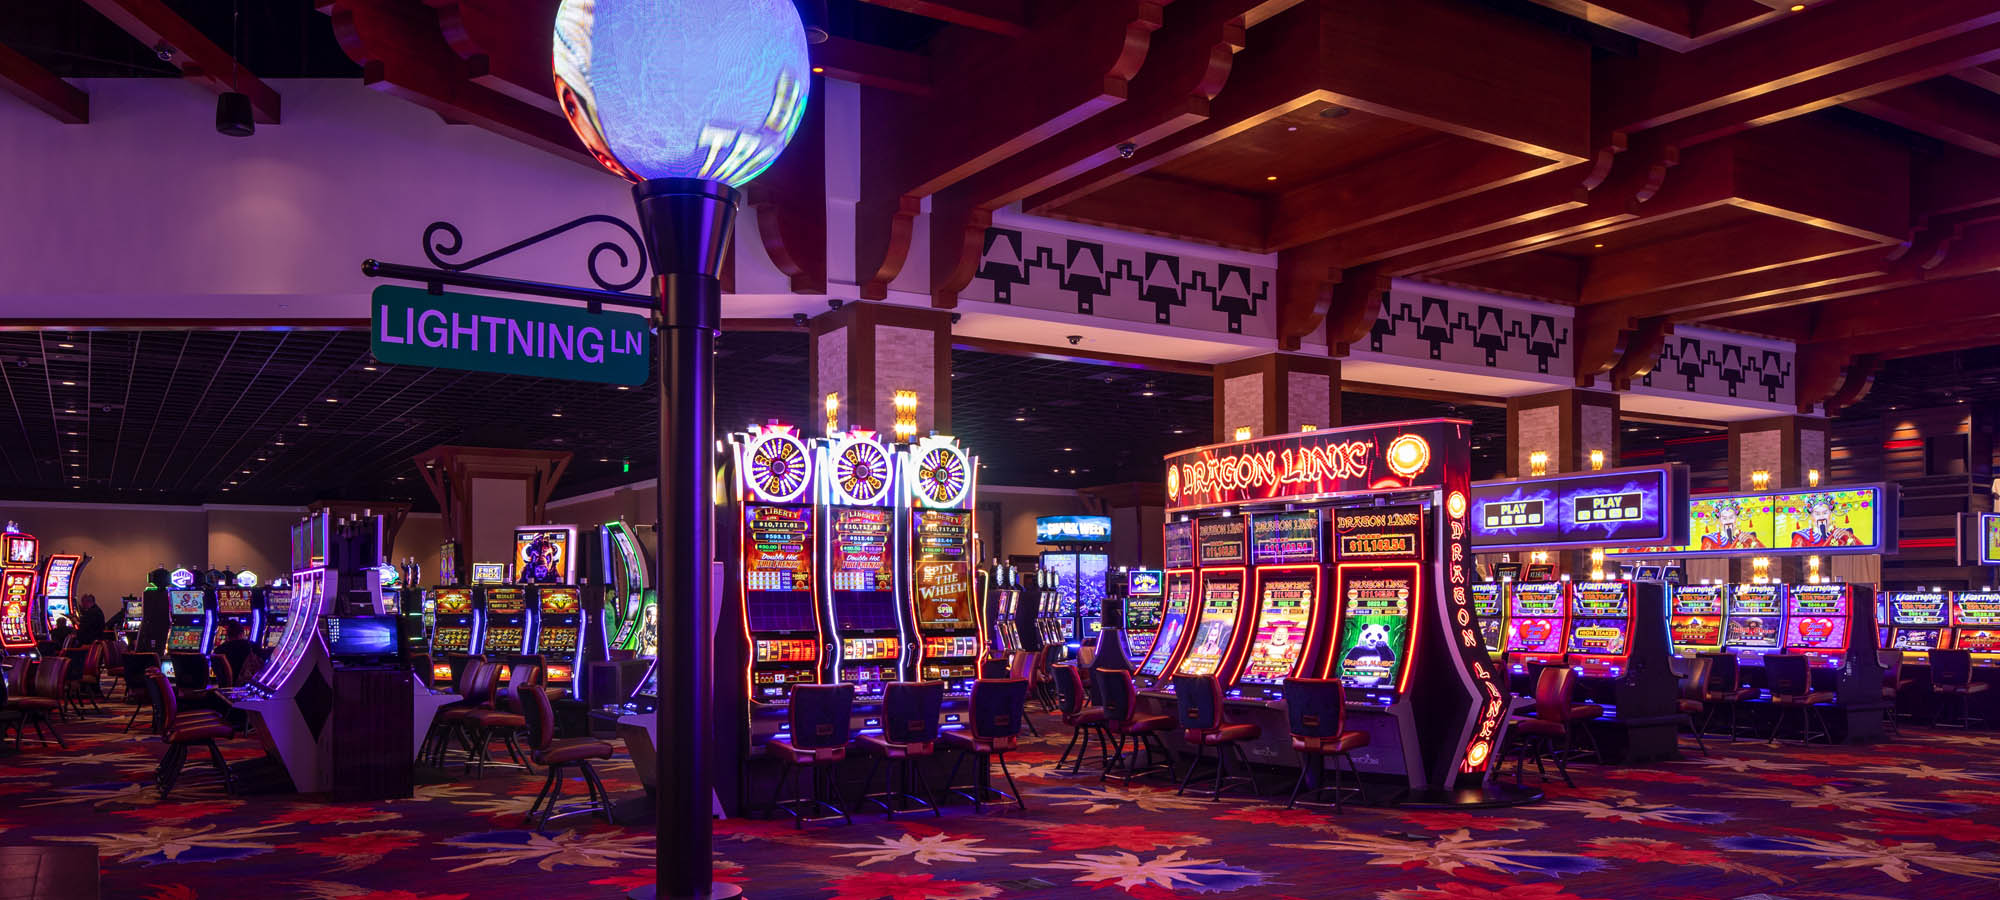 How to Find the Top Slots Online And Have Fun?